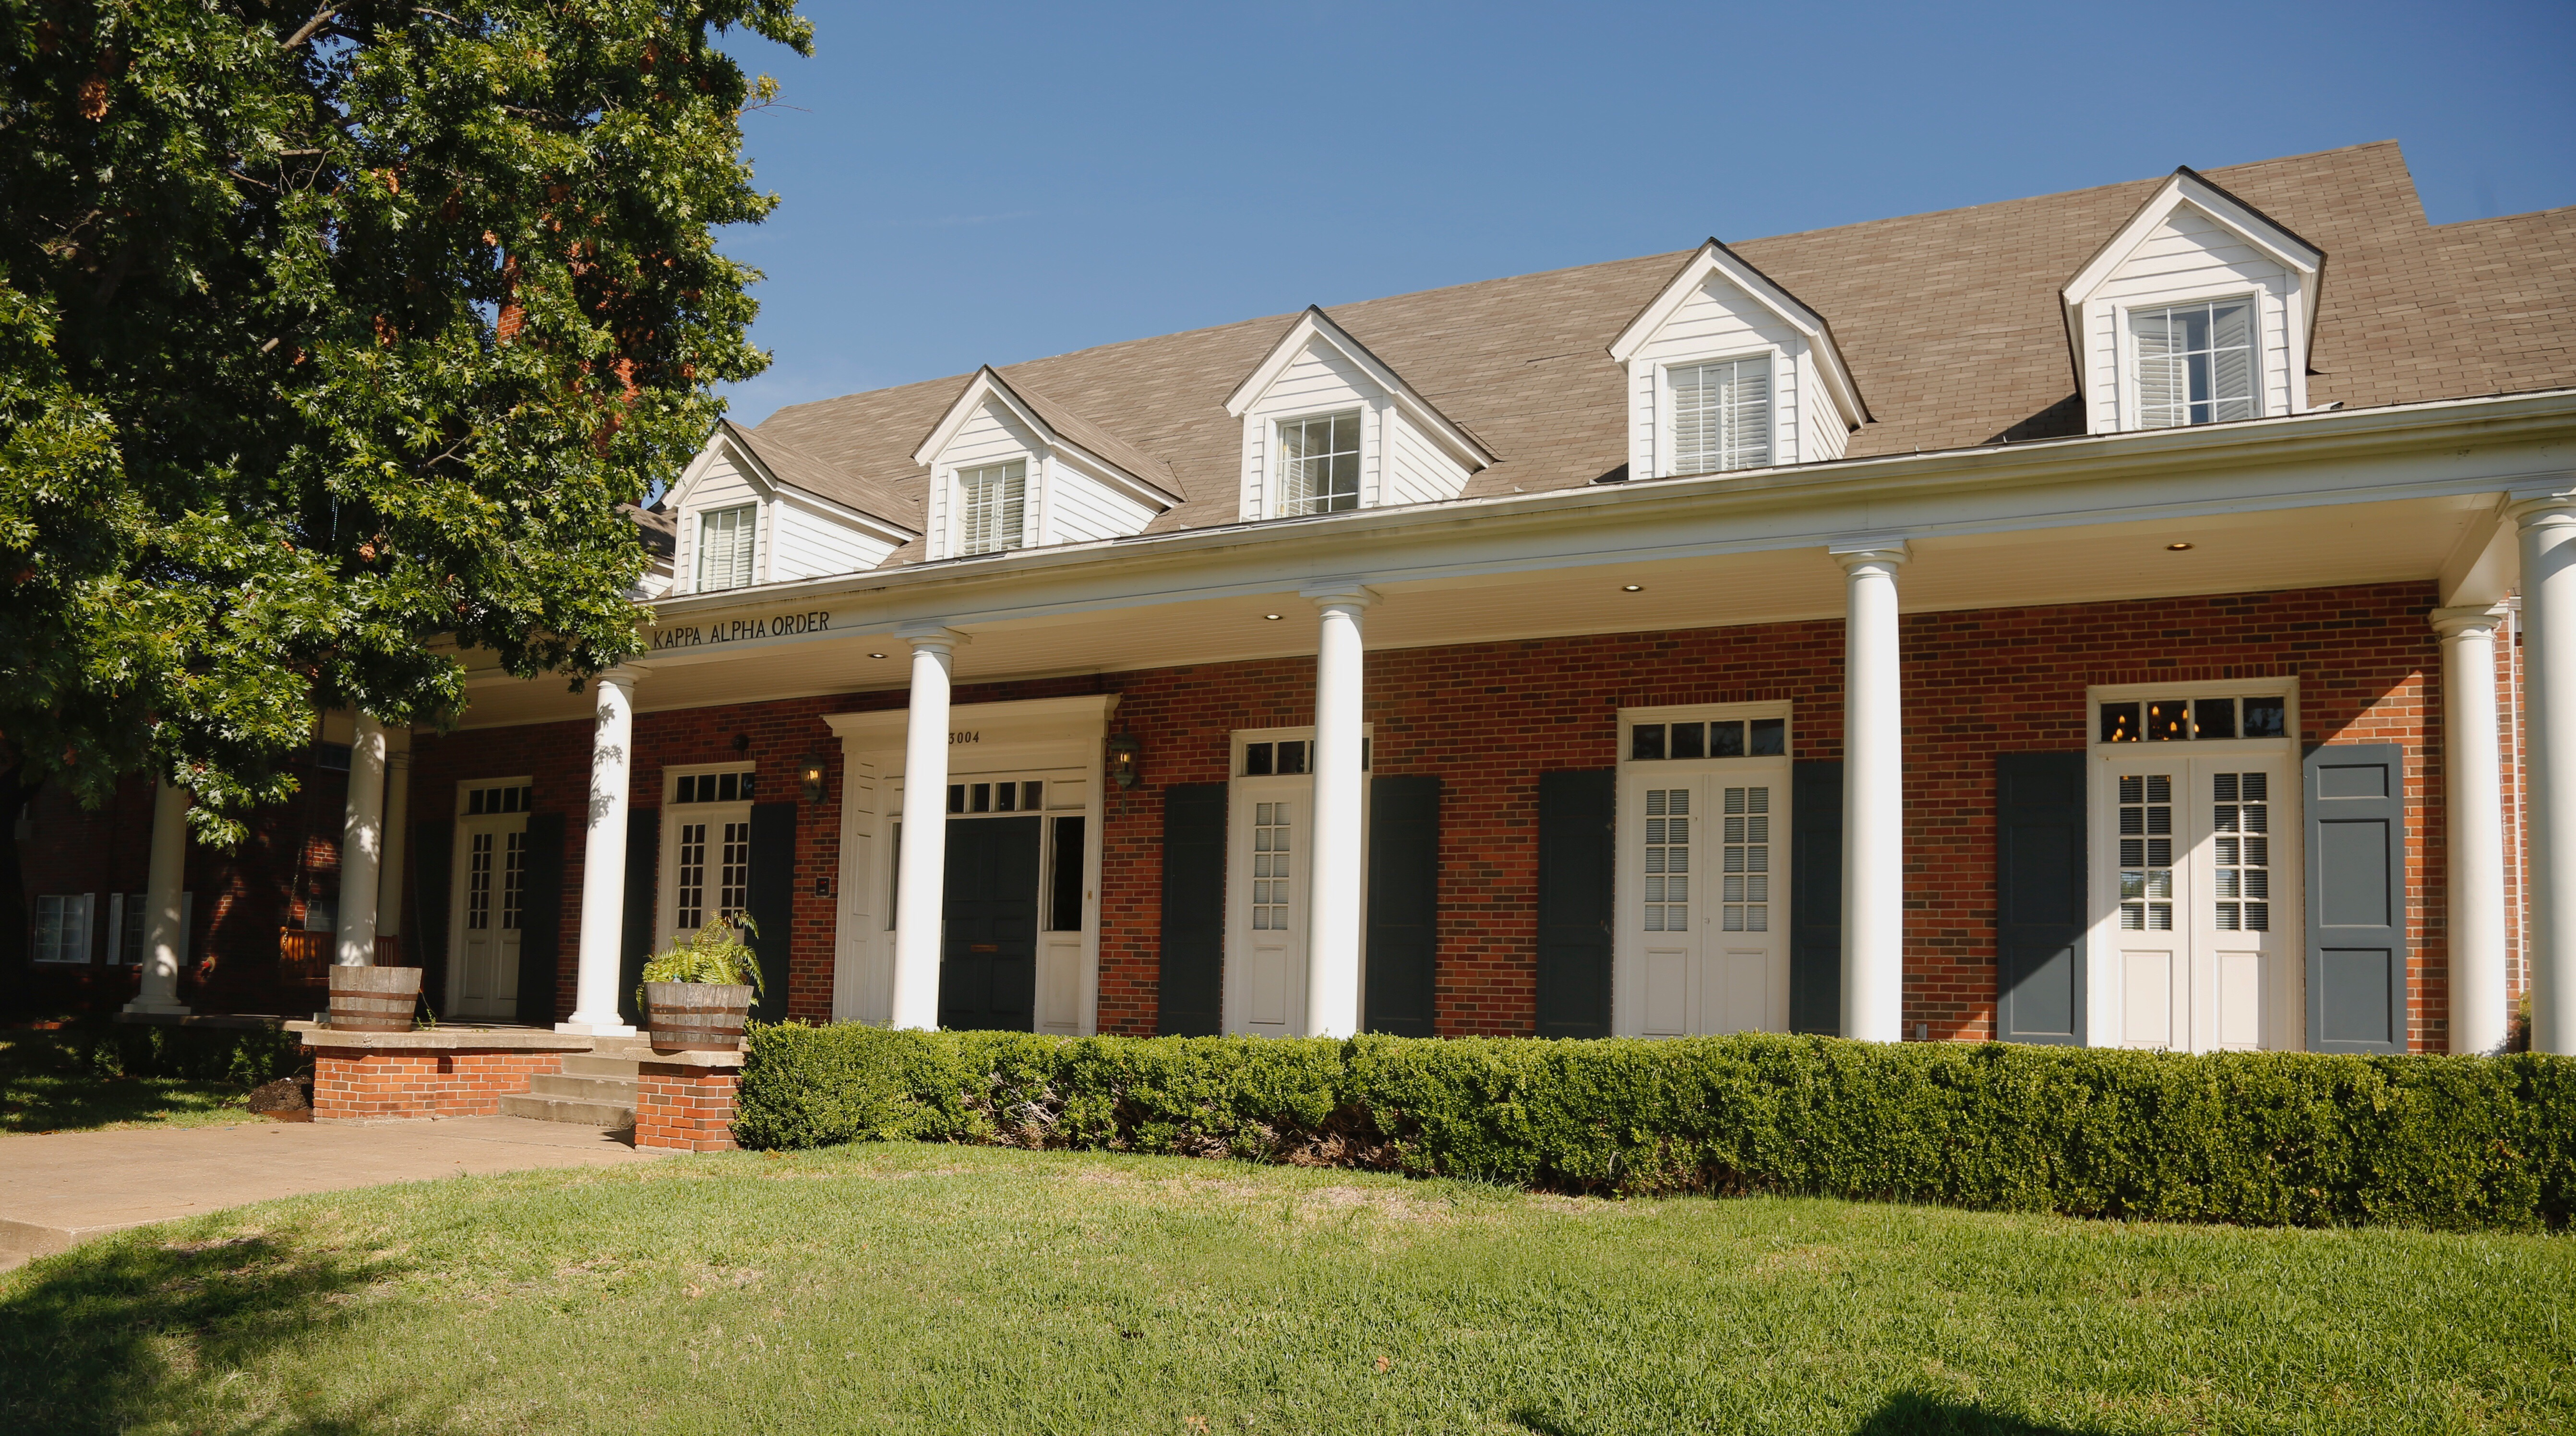 Kappa Alpha Psi Fraternity House – Fashionsneakers club